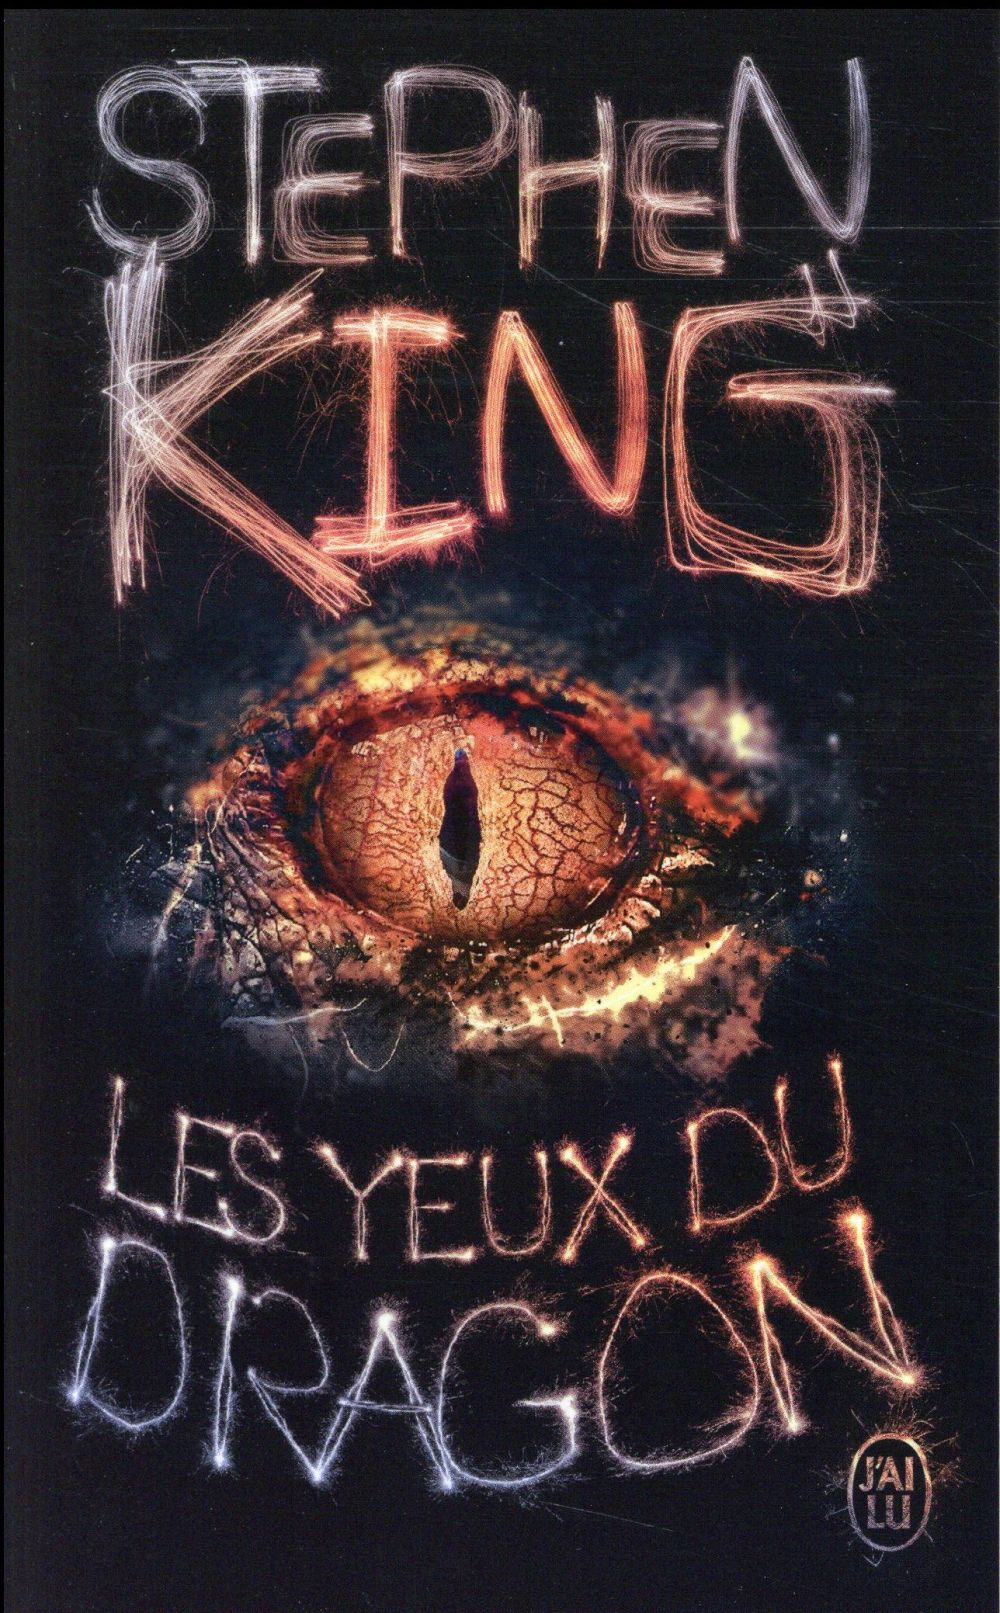 LES YEUX DU DRAGON King Stephen J'ai lu